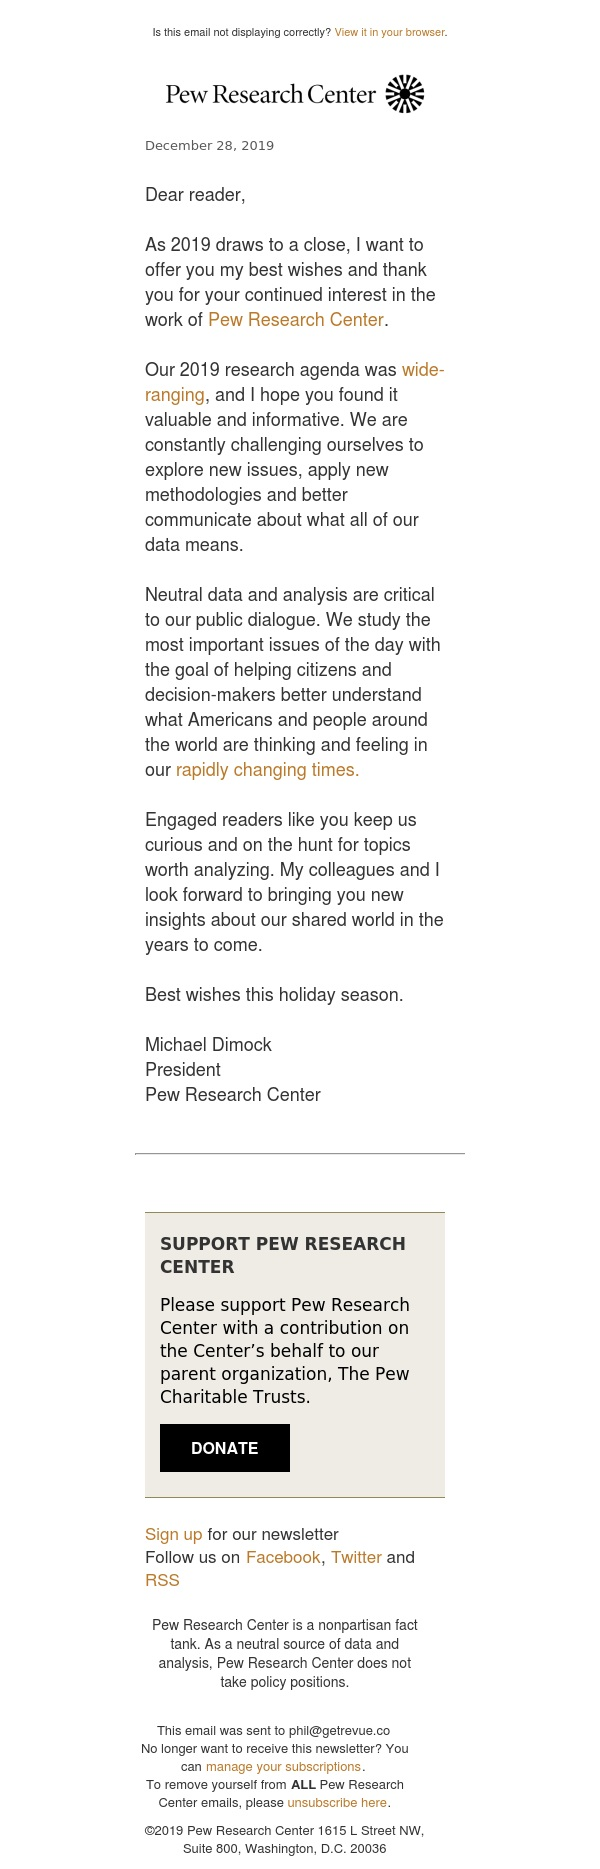 Happy New Year from Pew Research Center